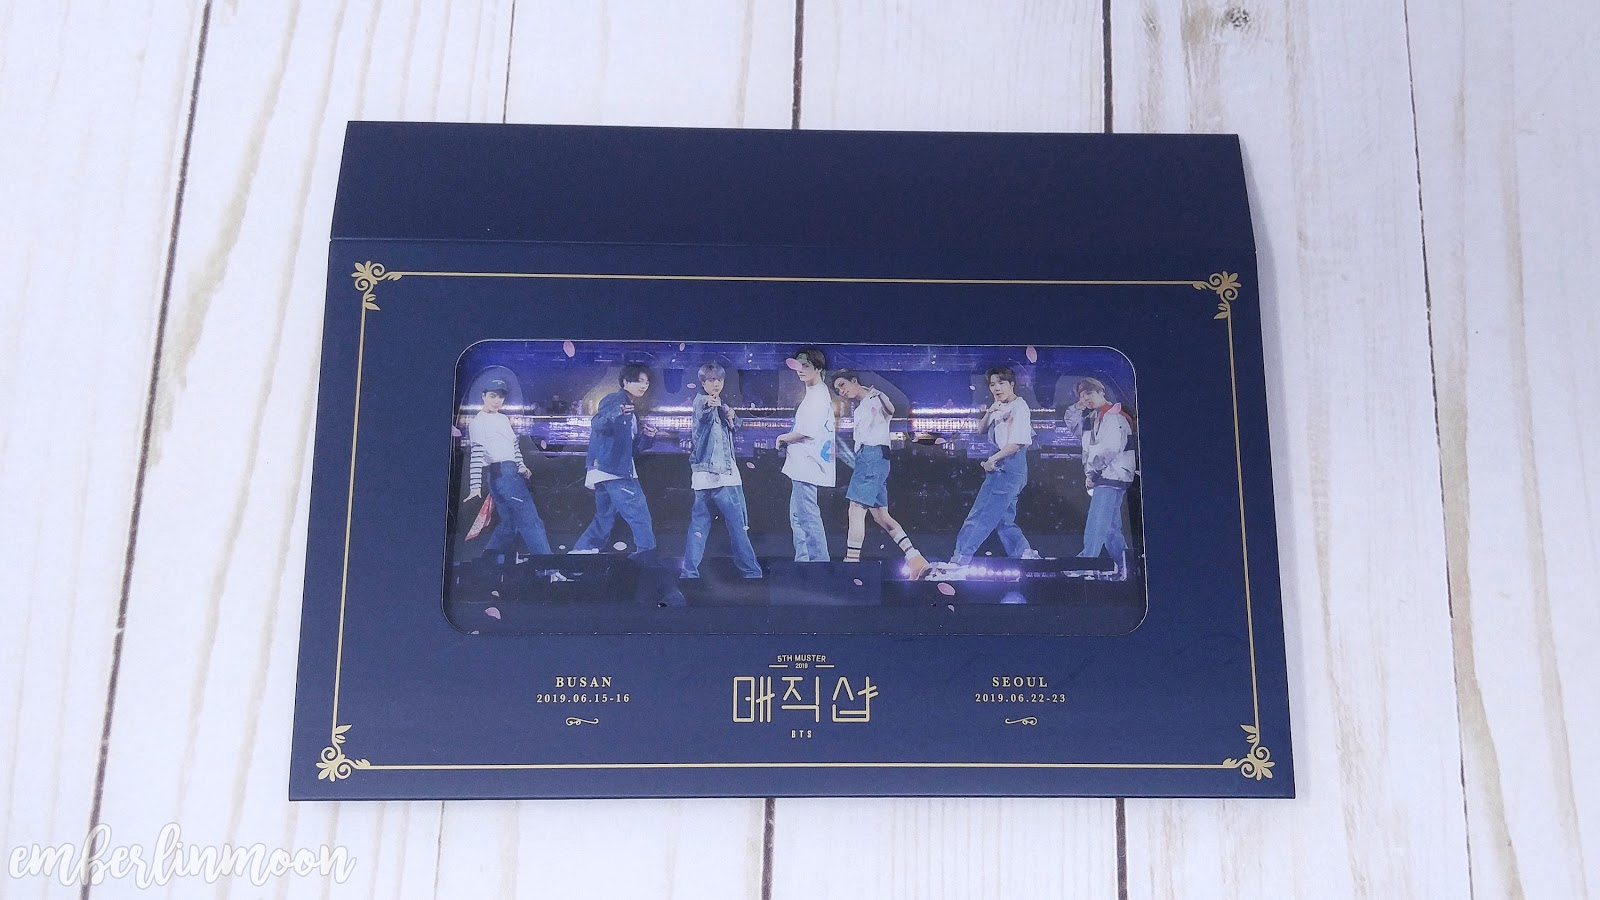 Yesasia Bts 5th Muster Magic Shop Dvd 4 Disc